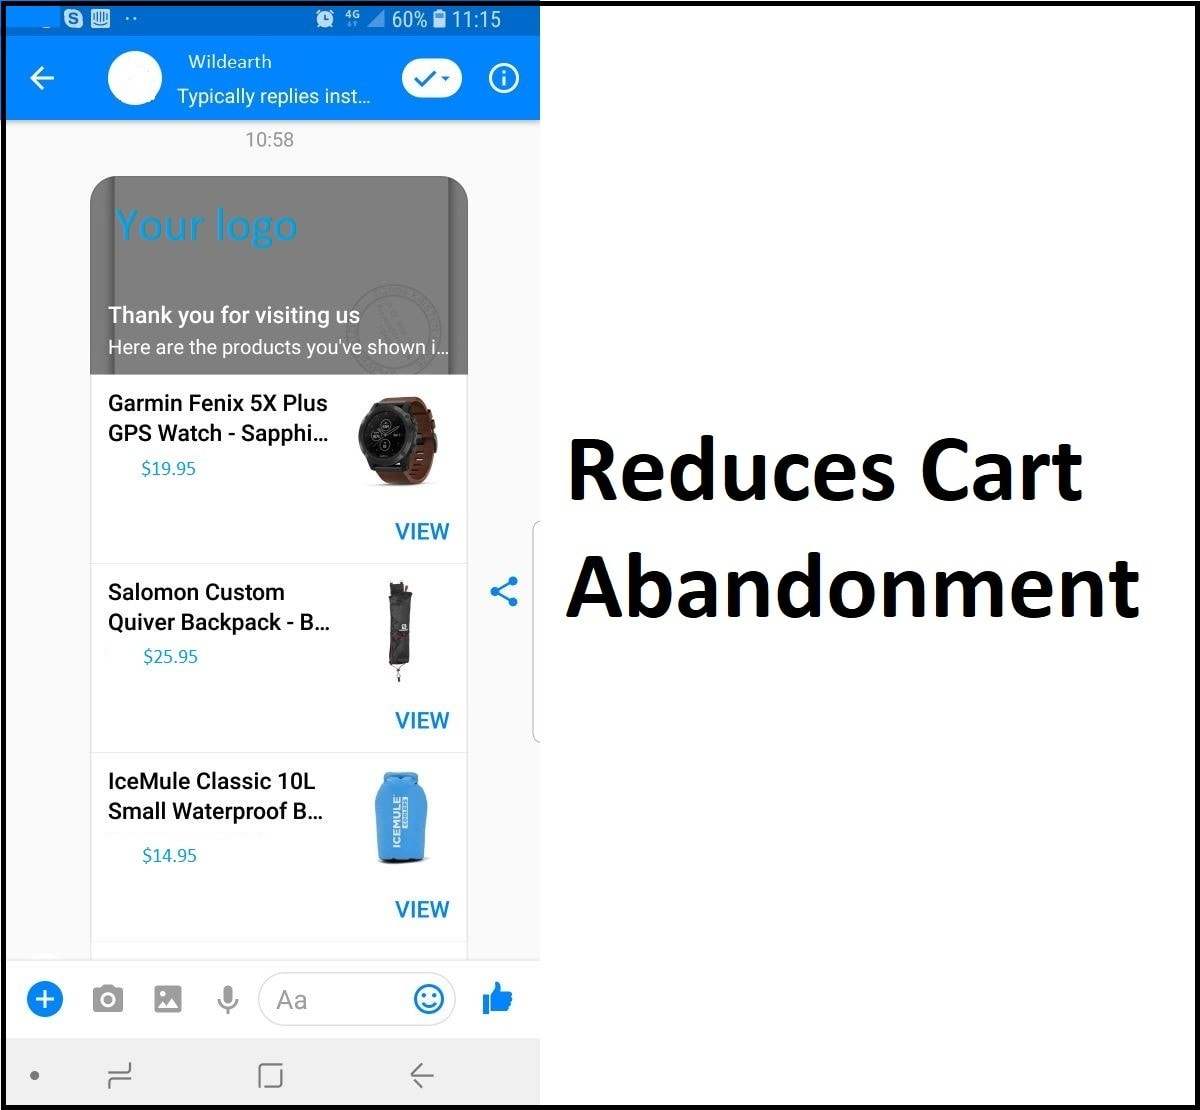 Reduces Cart Abandonment